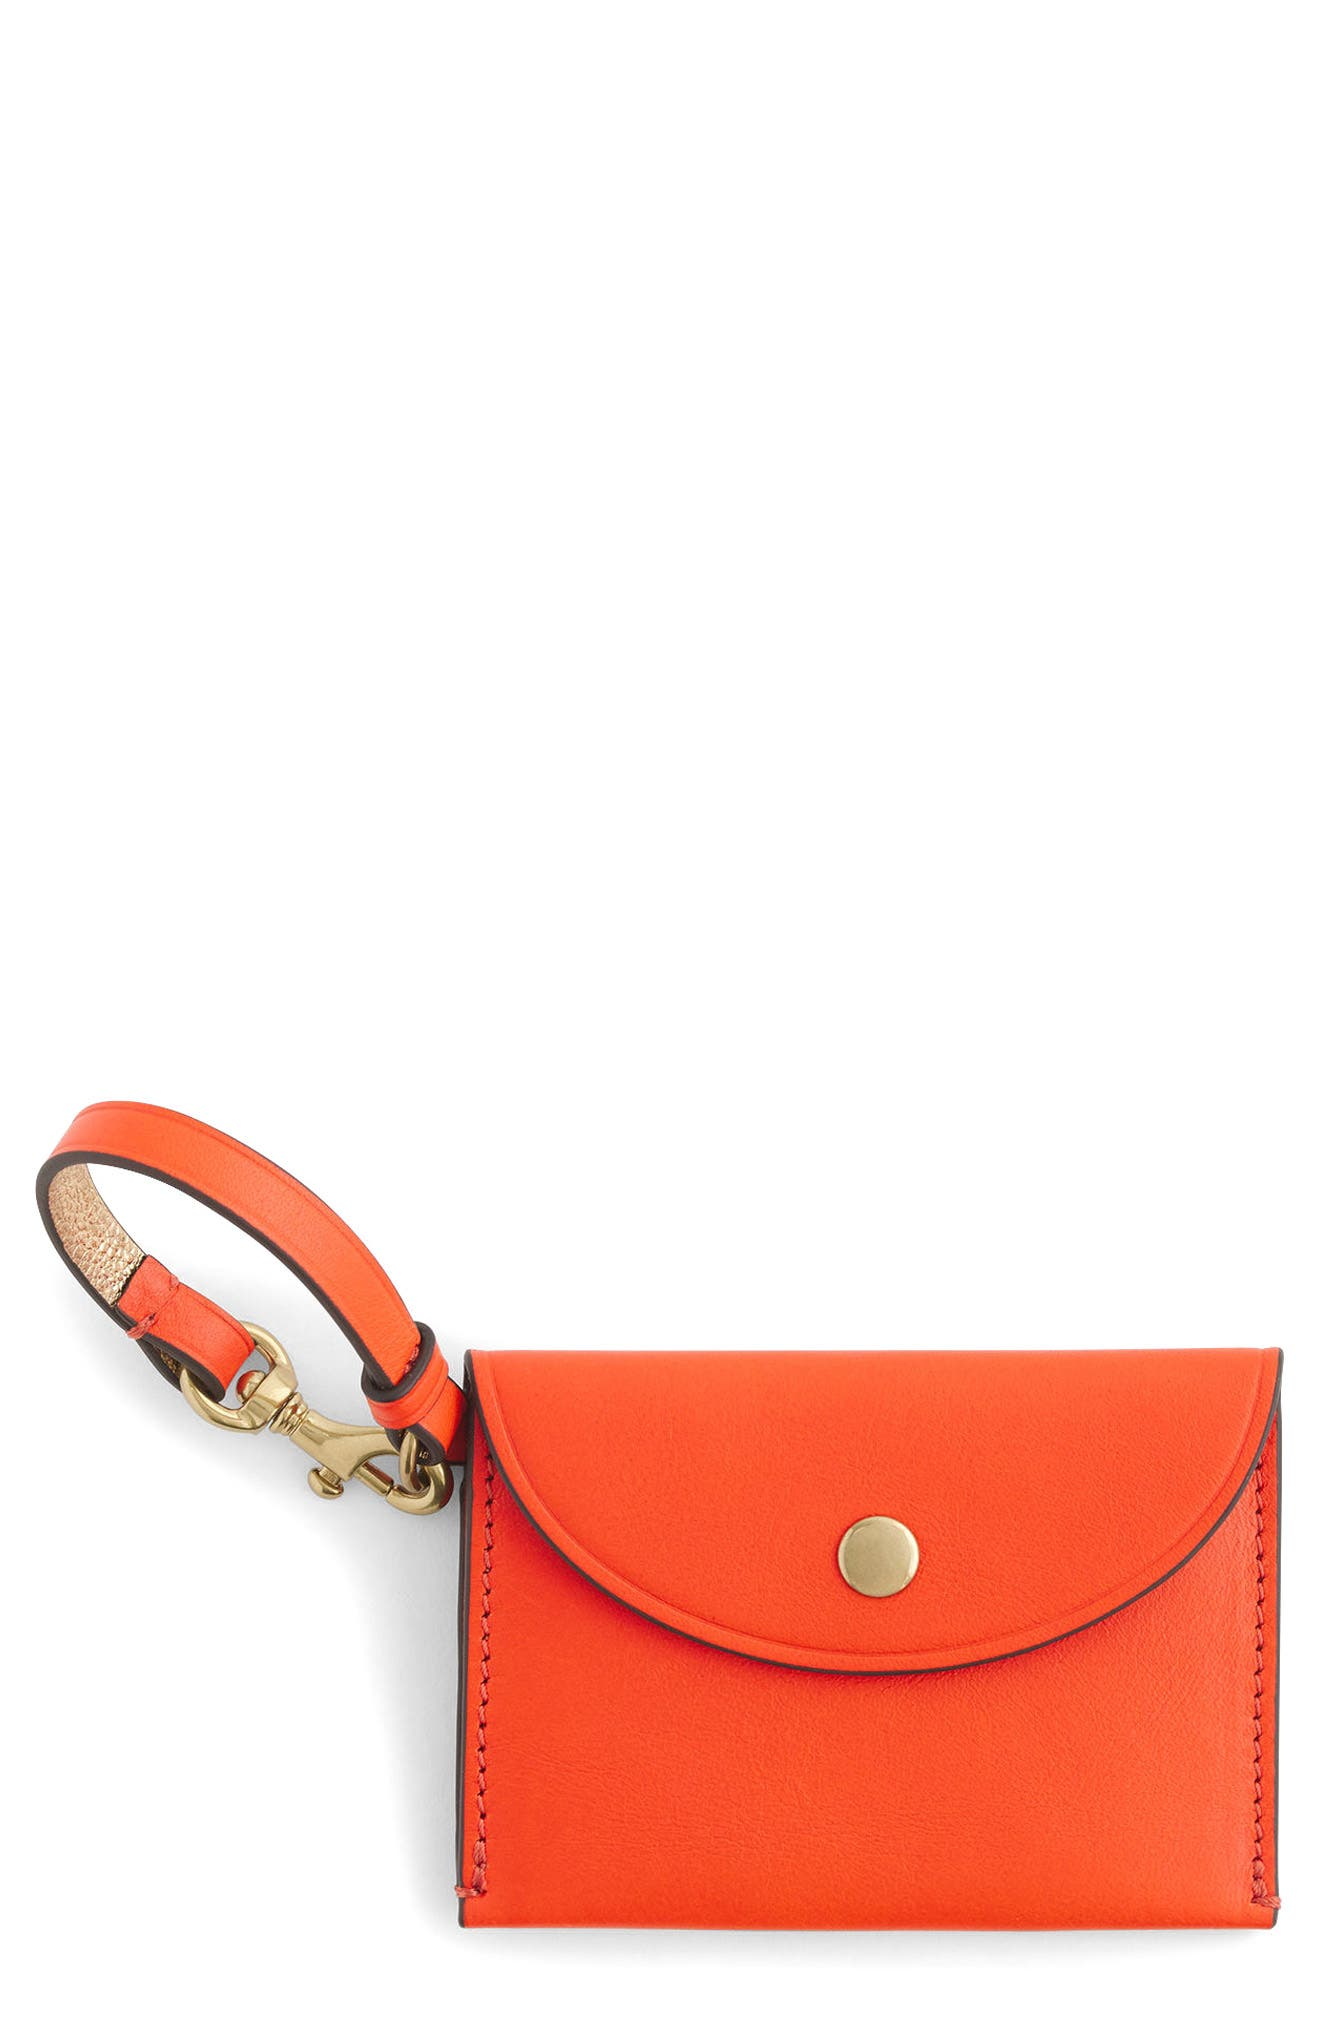 J.Crew Leather Coin Purse